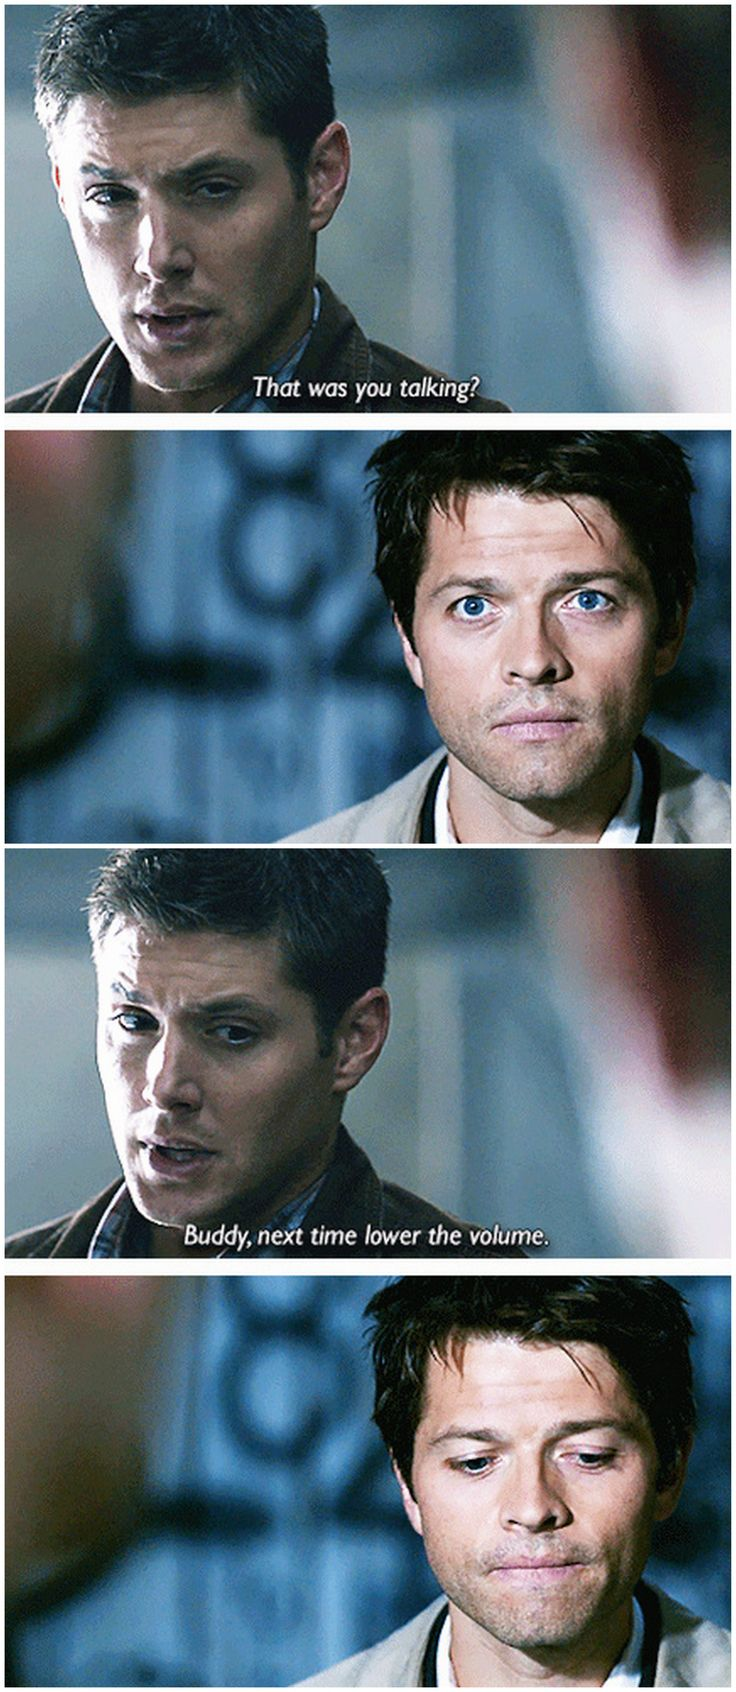 4x01 Lazarus Rising [gifset] - Buddy, next time lower the volume - #SPN #Dean #Castiel <<< he looks so upset in the last pic